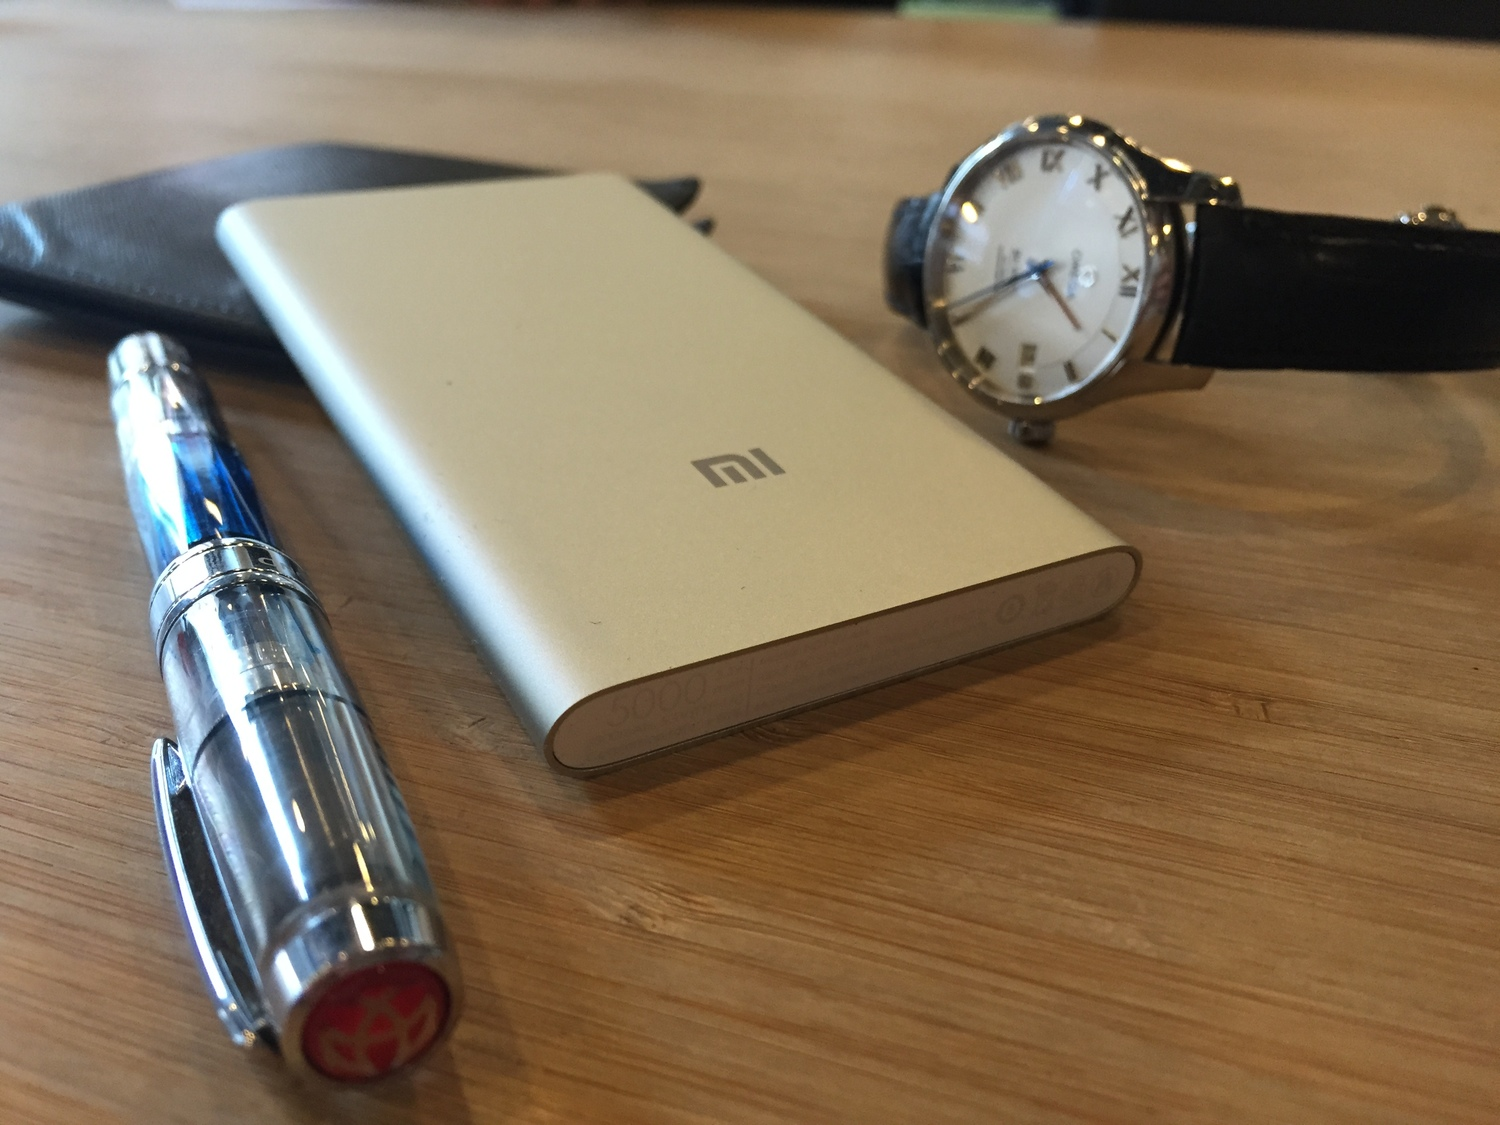 Xiaomi Powerbank in pictures — Insignificant, but with purpose